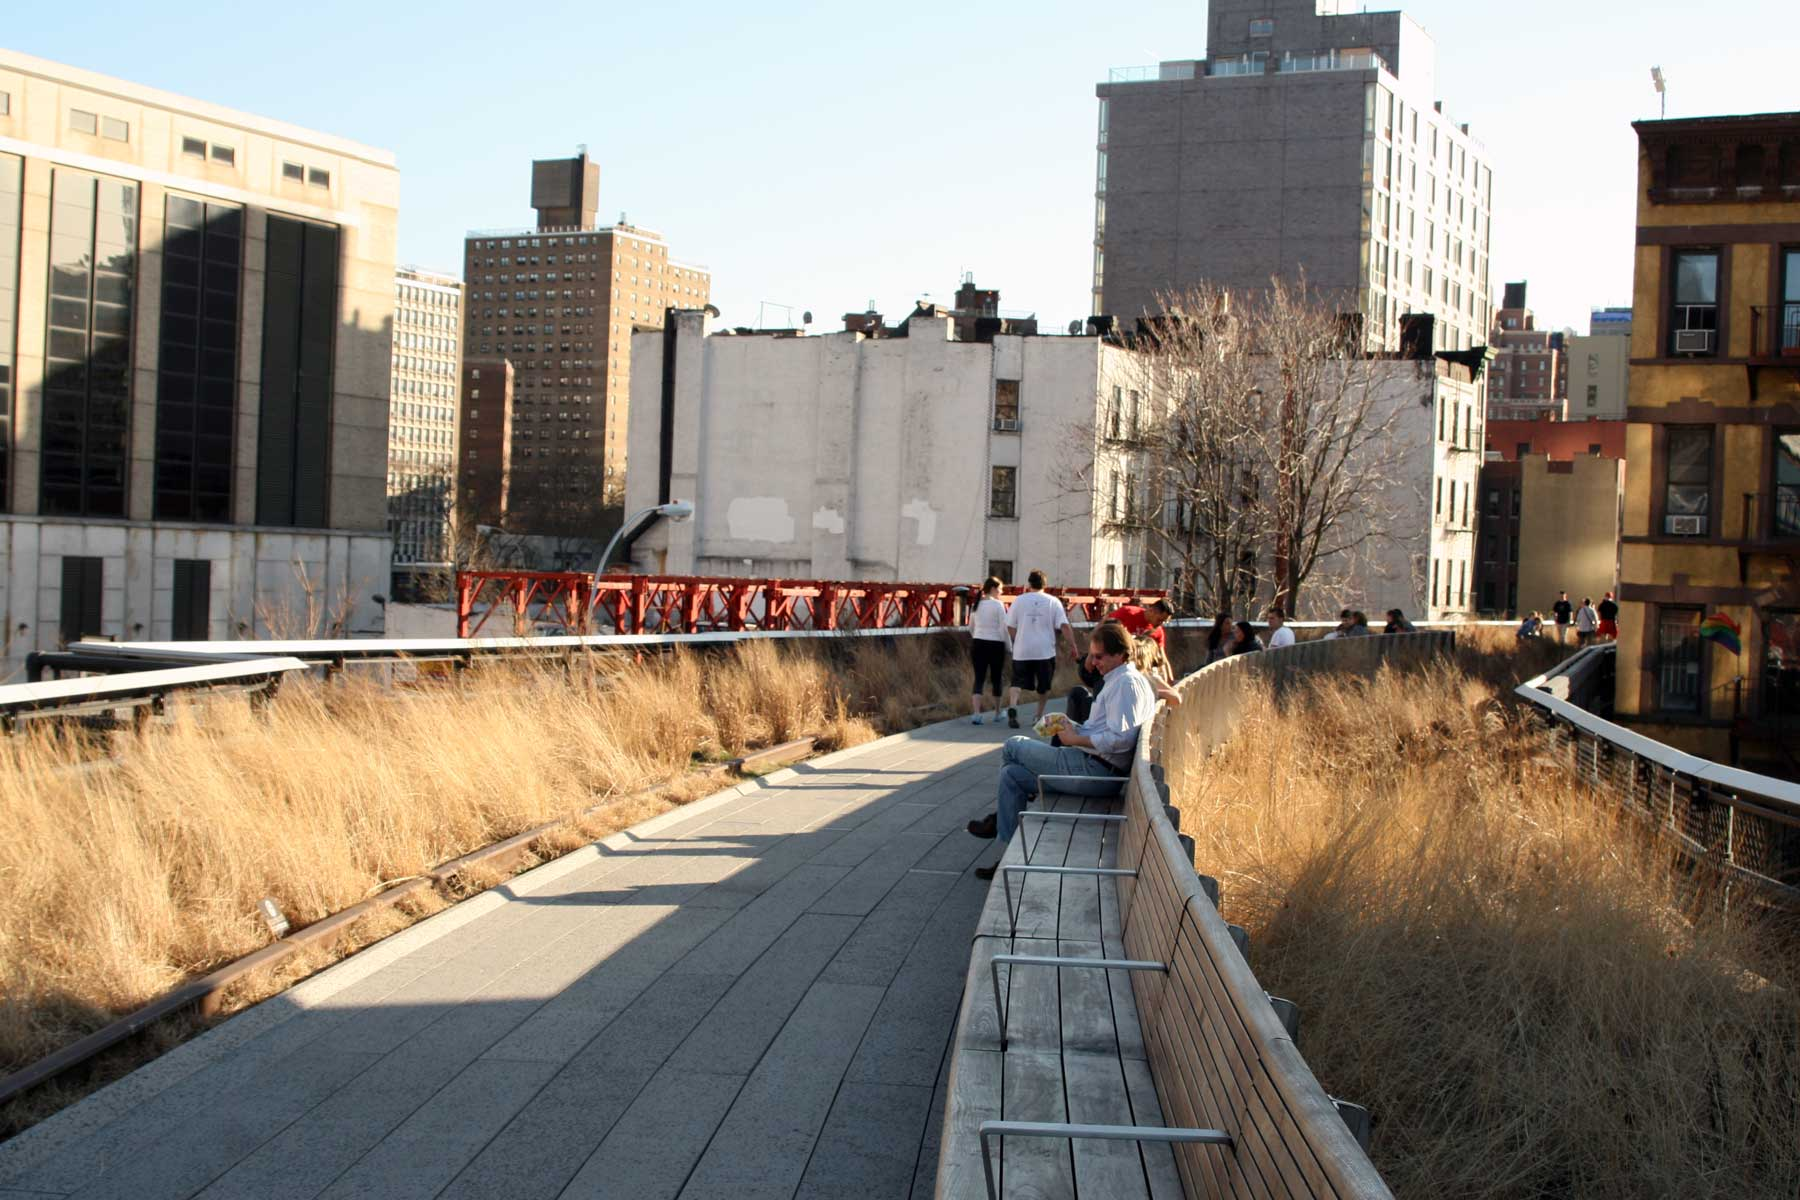 Photograph of materials used on the Highline